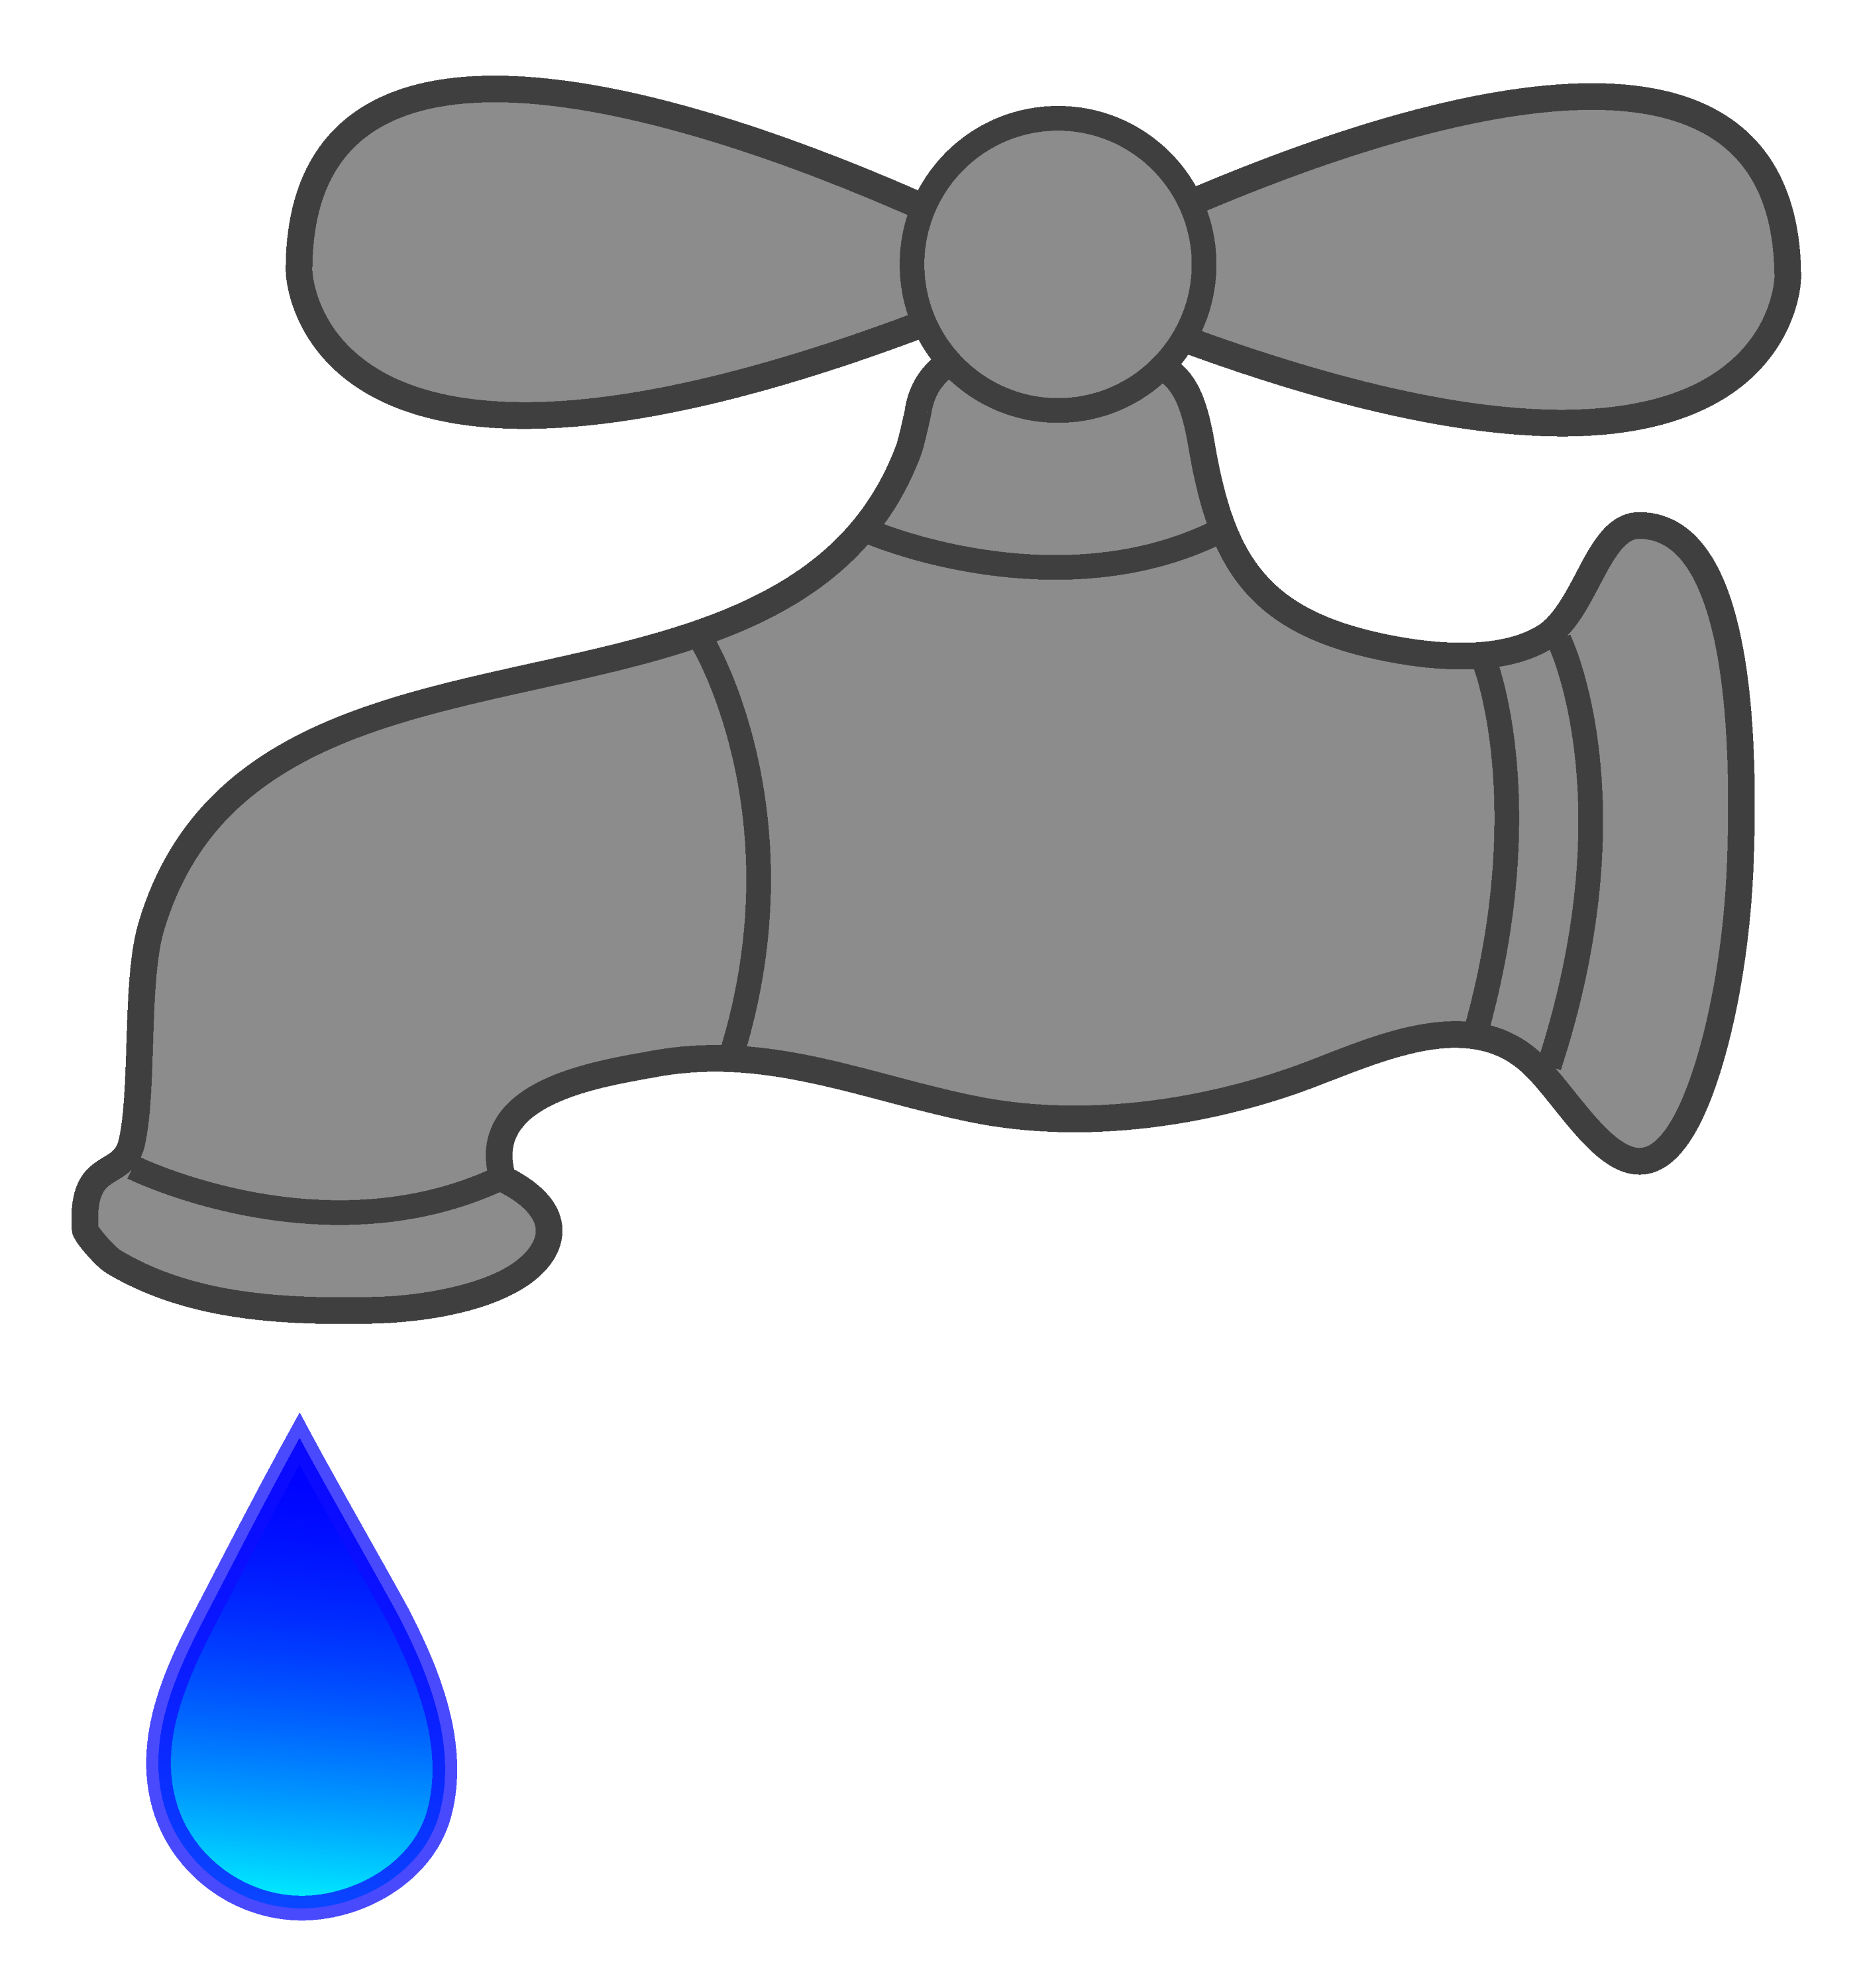 Water Faucet Dripping - Free Clip Art